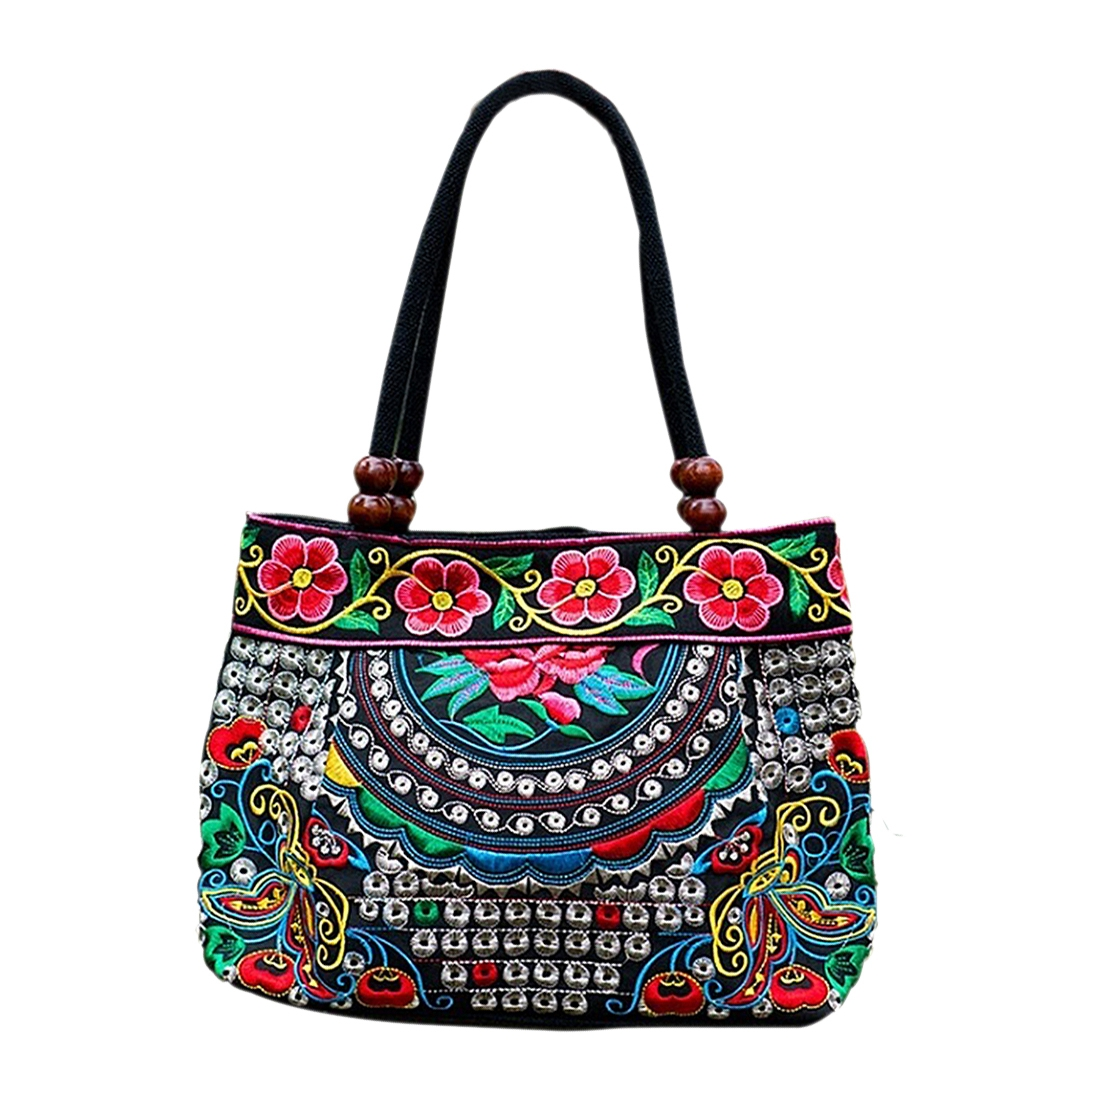 Chinese Style Women Handbag Embroidery Ethnic Summer Fashion Handmade Flowers Ladies Tote Shoulder Bags Cross-body  Butterfly 100 super cute little embroidery chinese embroidery handmade art design book